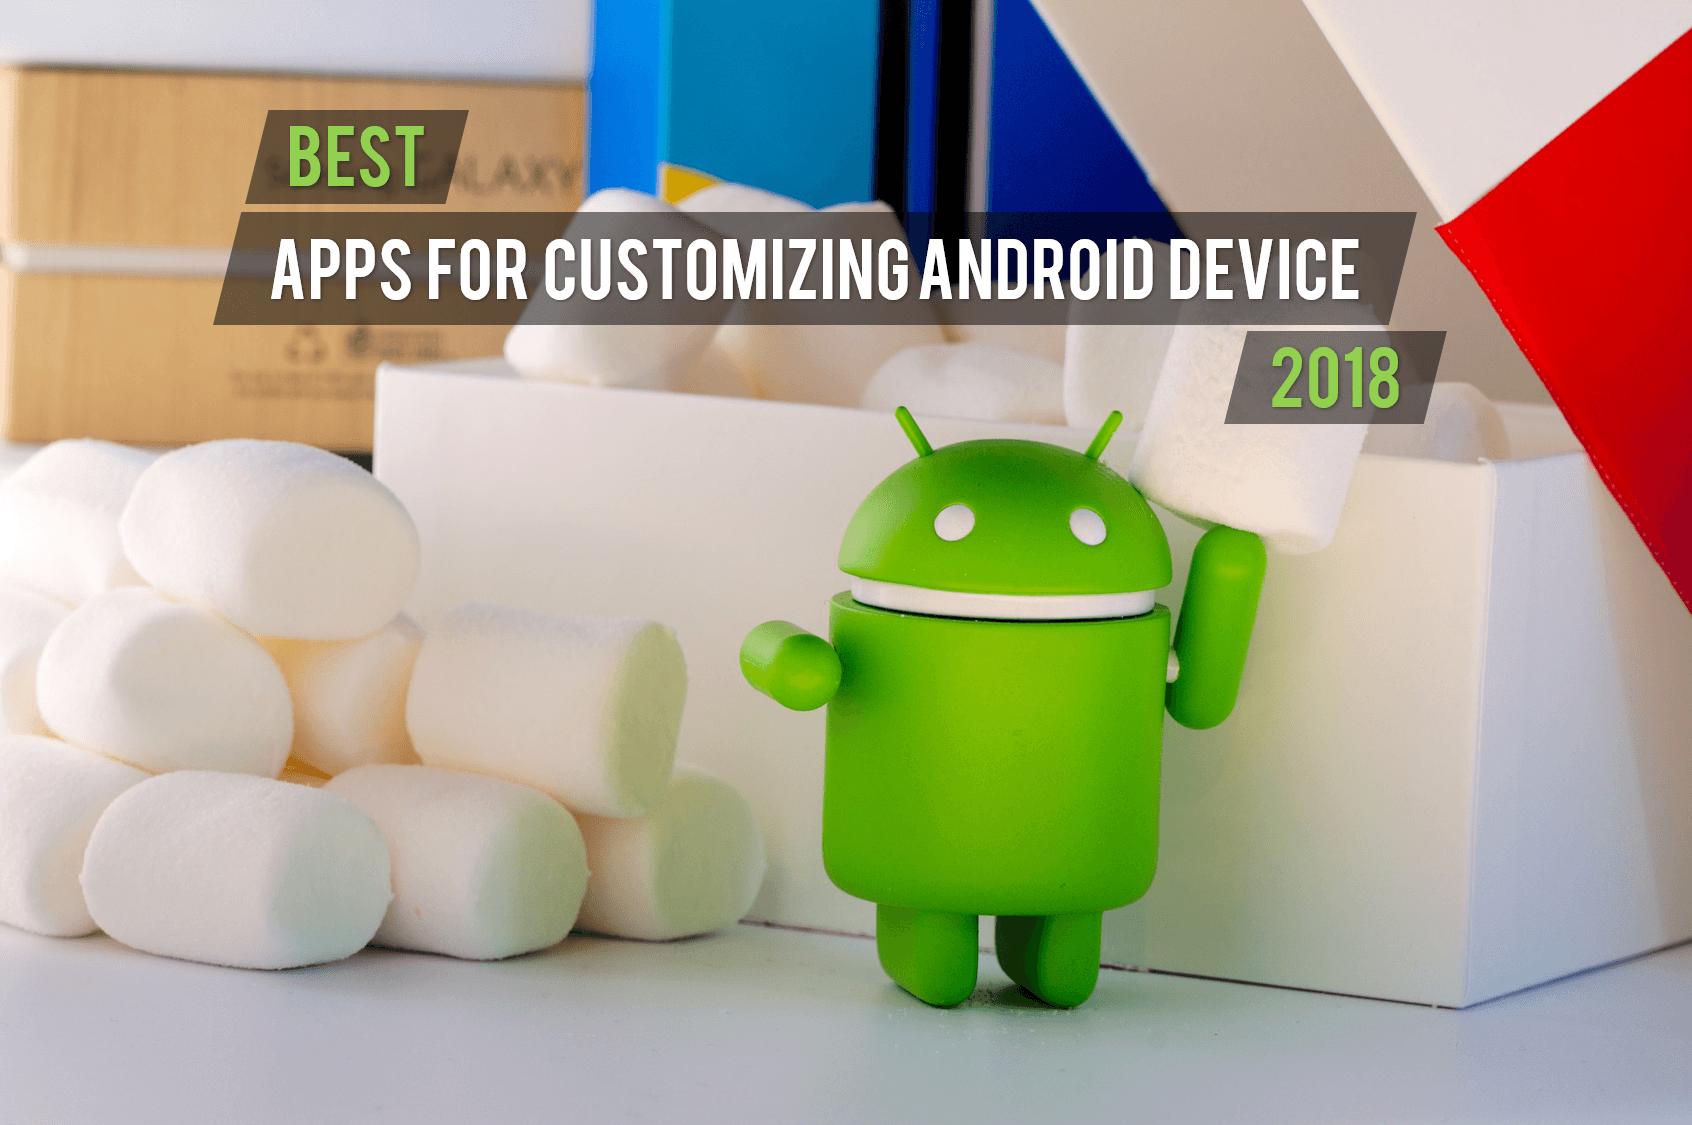 Customizing Your Android